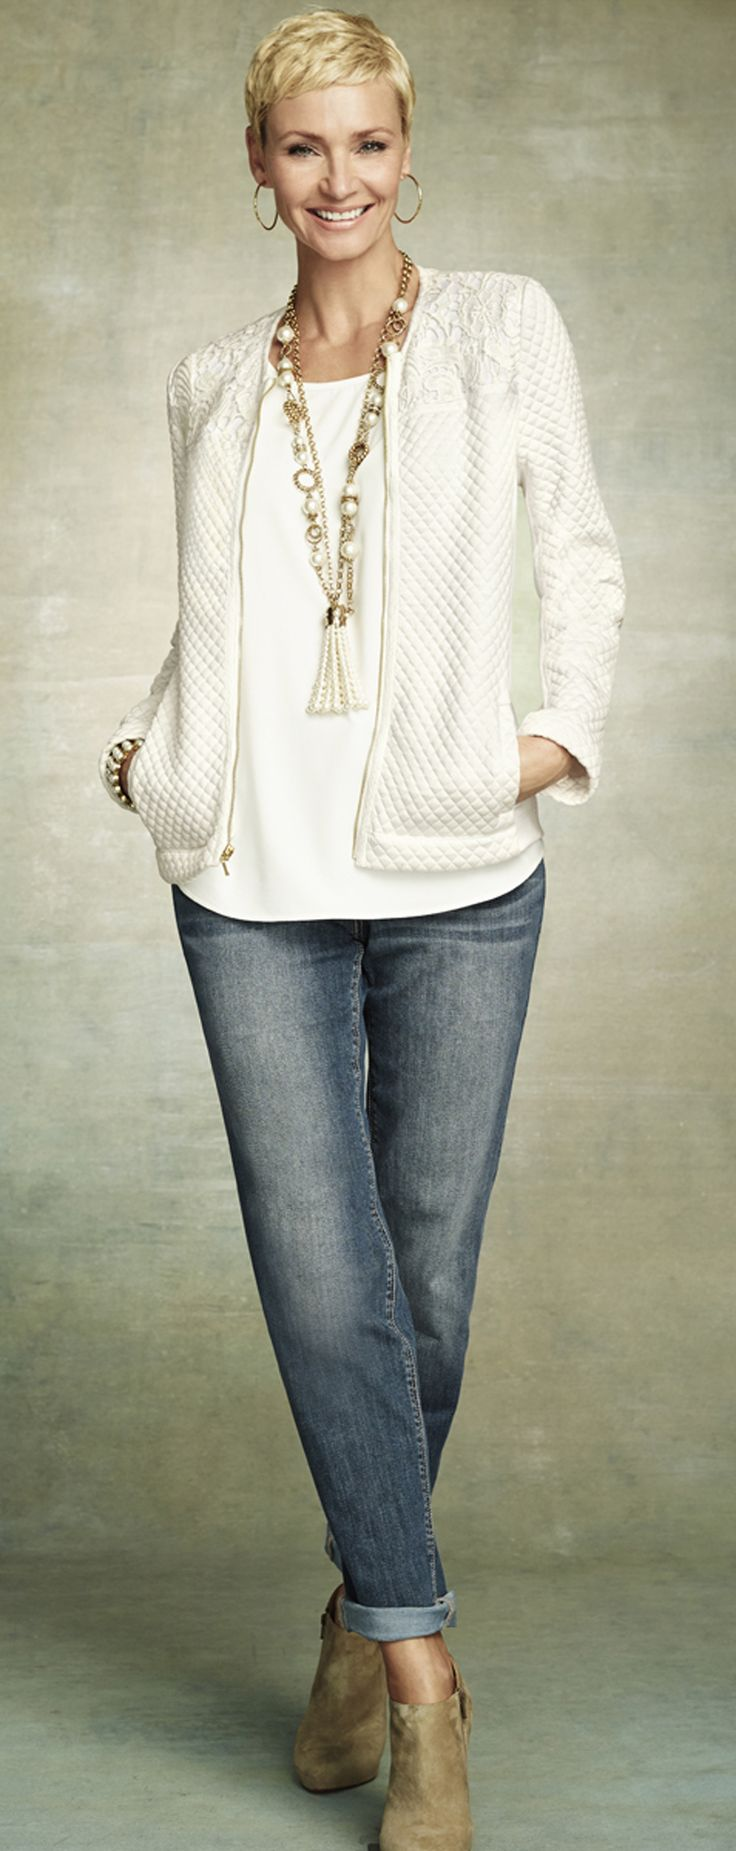 Winter White. Chico's Quilted Pieced Lace Jacket.